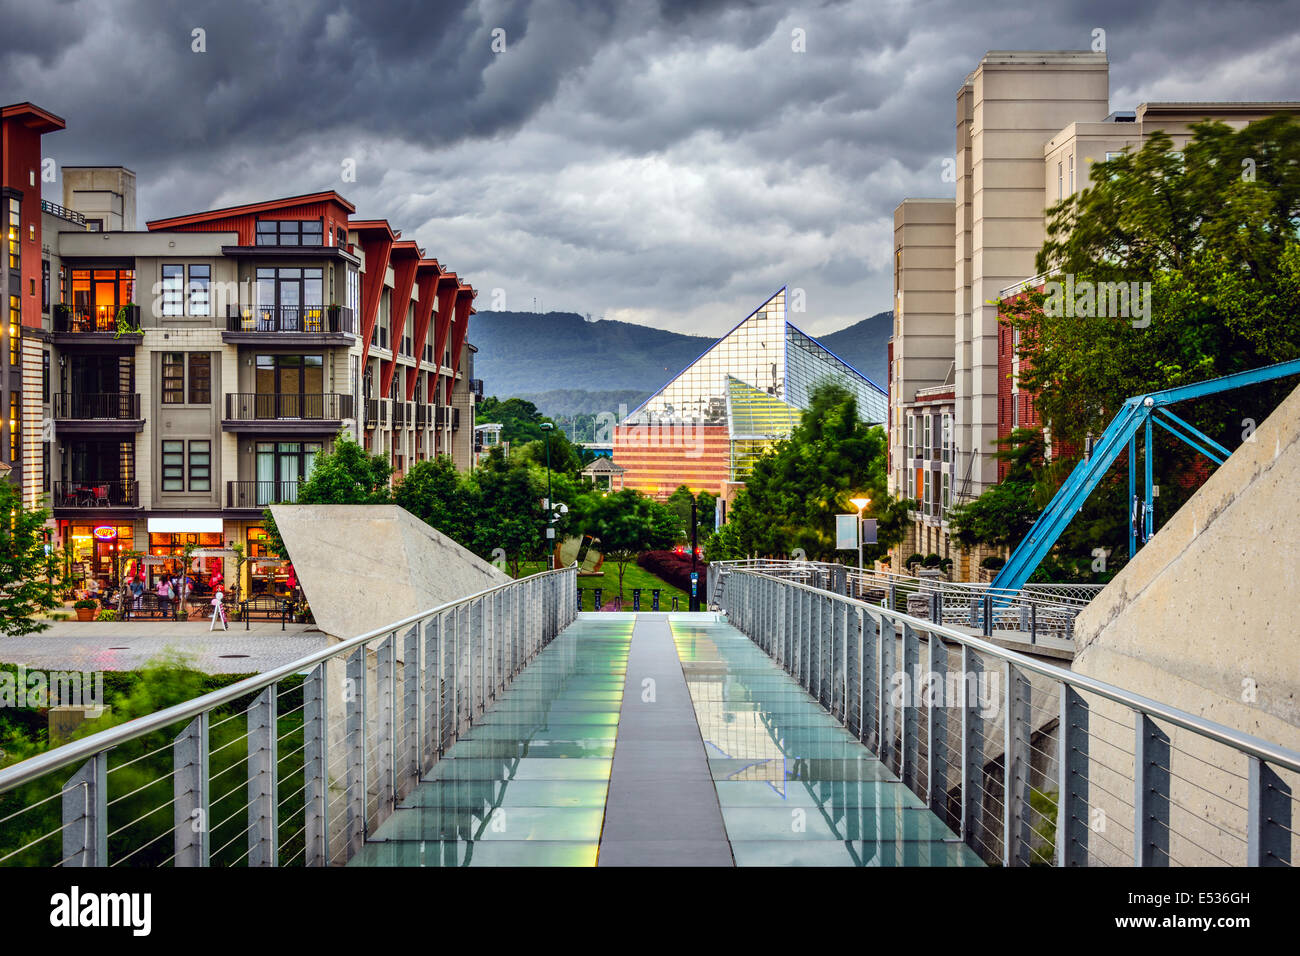 Chattanooga, Tennessee, USA downtown cityscape under a stormy sky. - Stock Image